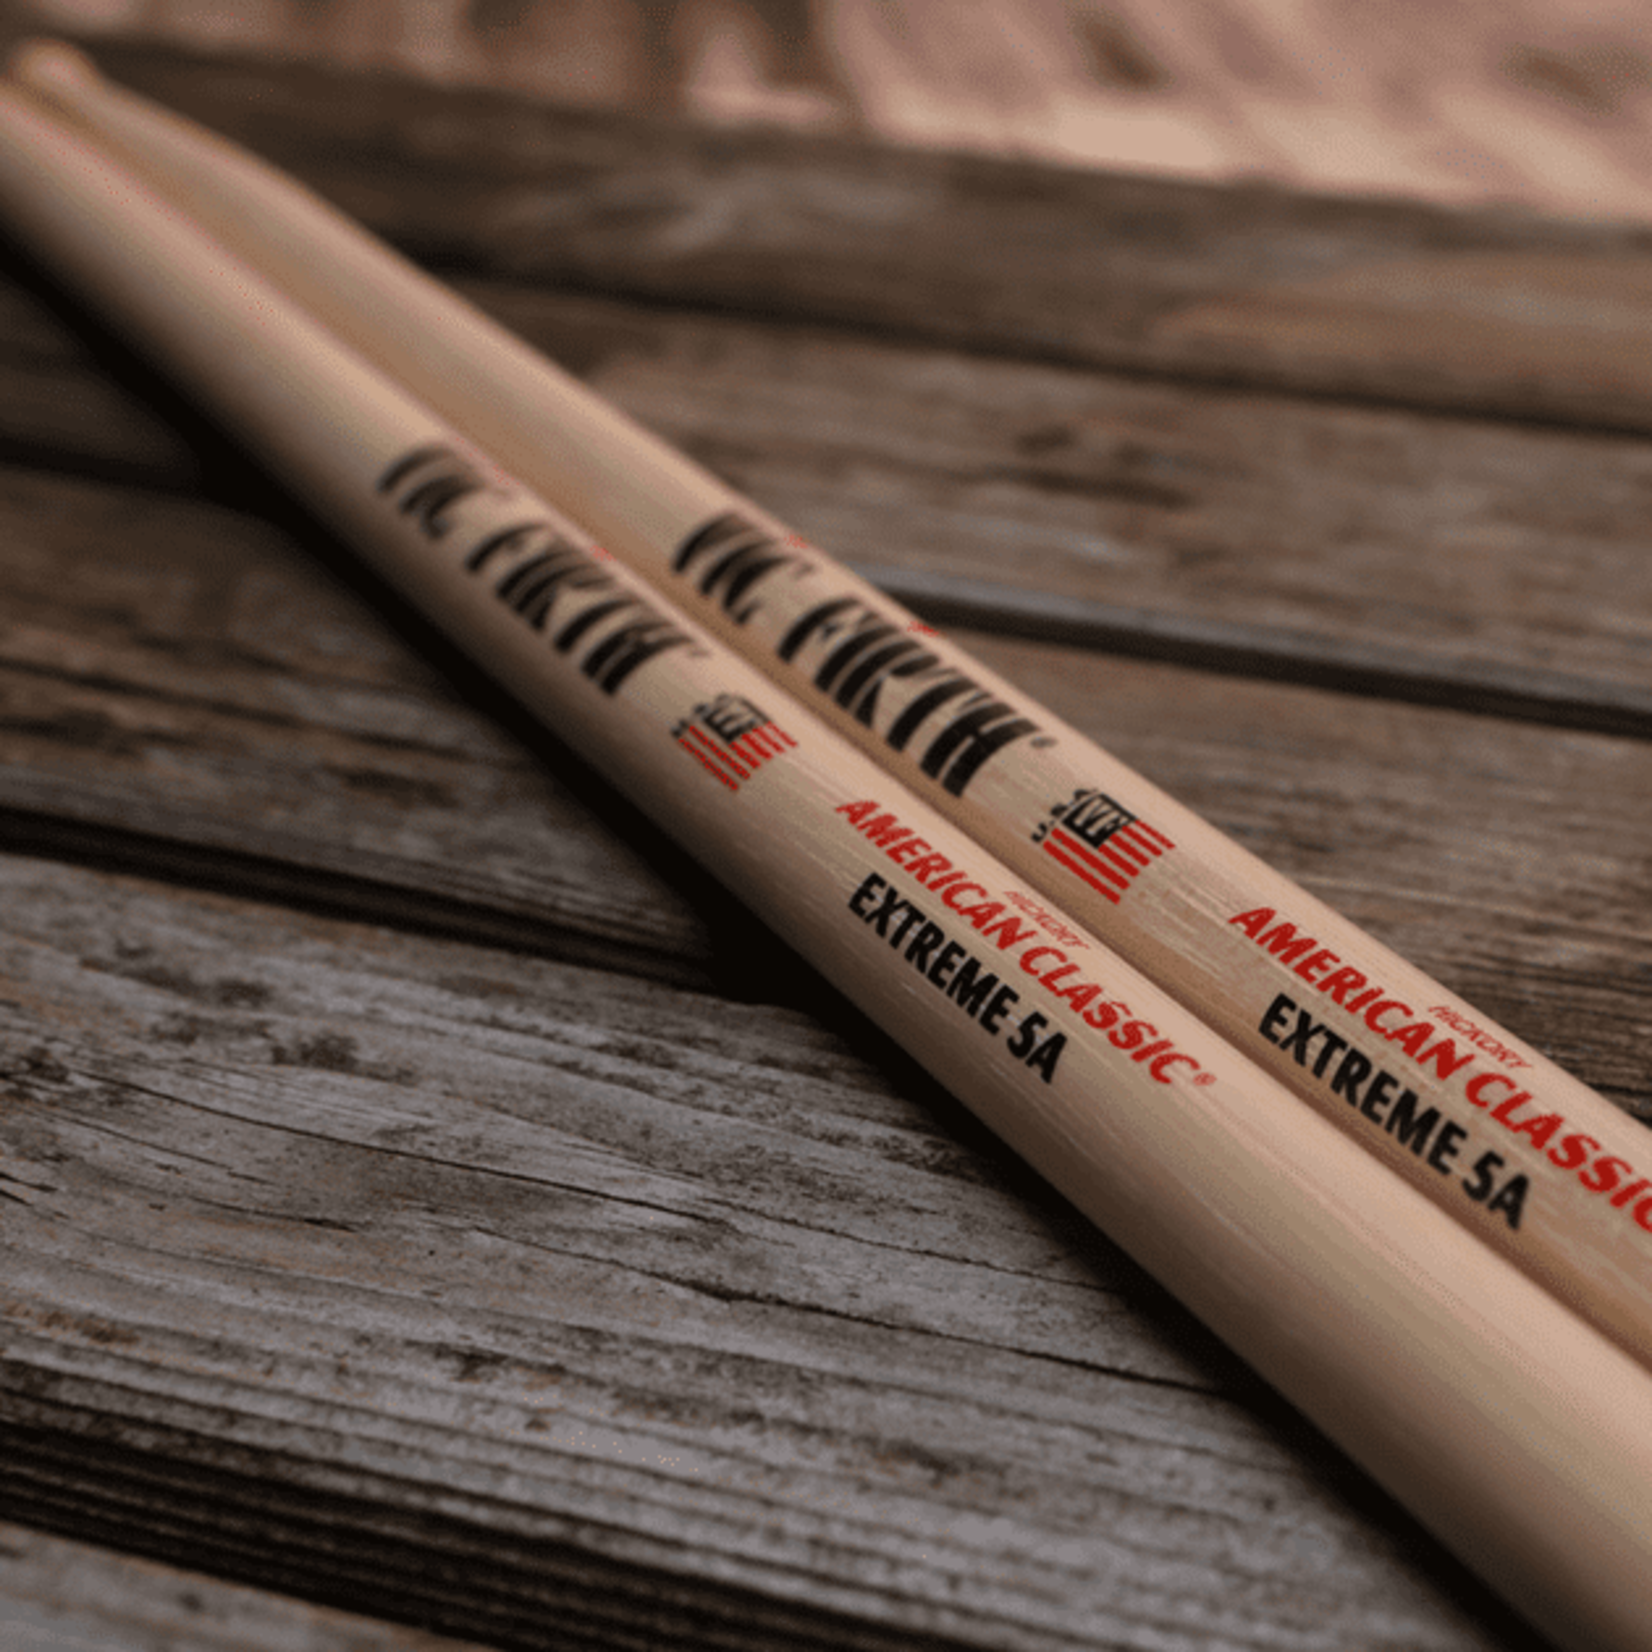 Vic Firth VIC FIRTH AMERICAN CLASSIC EXTREME 5A WOOD TIP (PAIR)